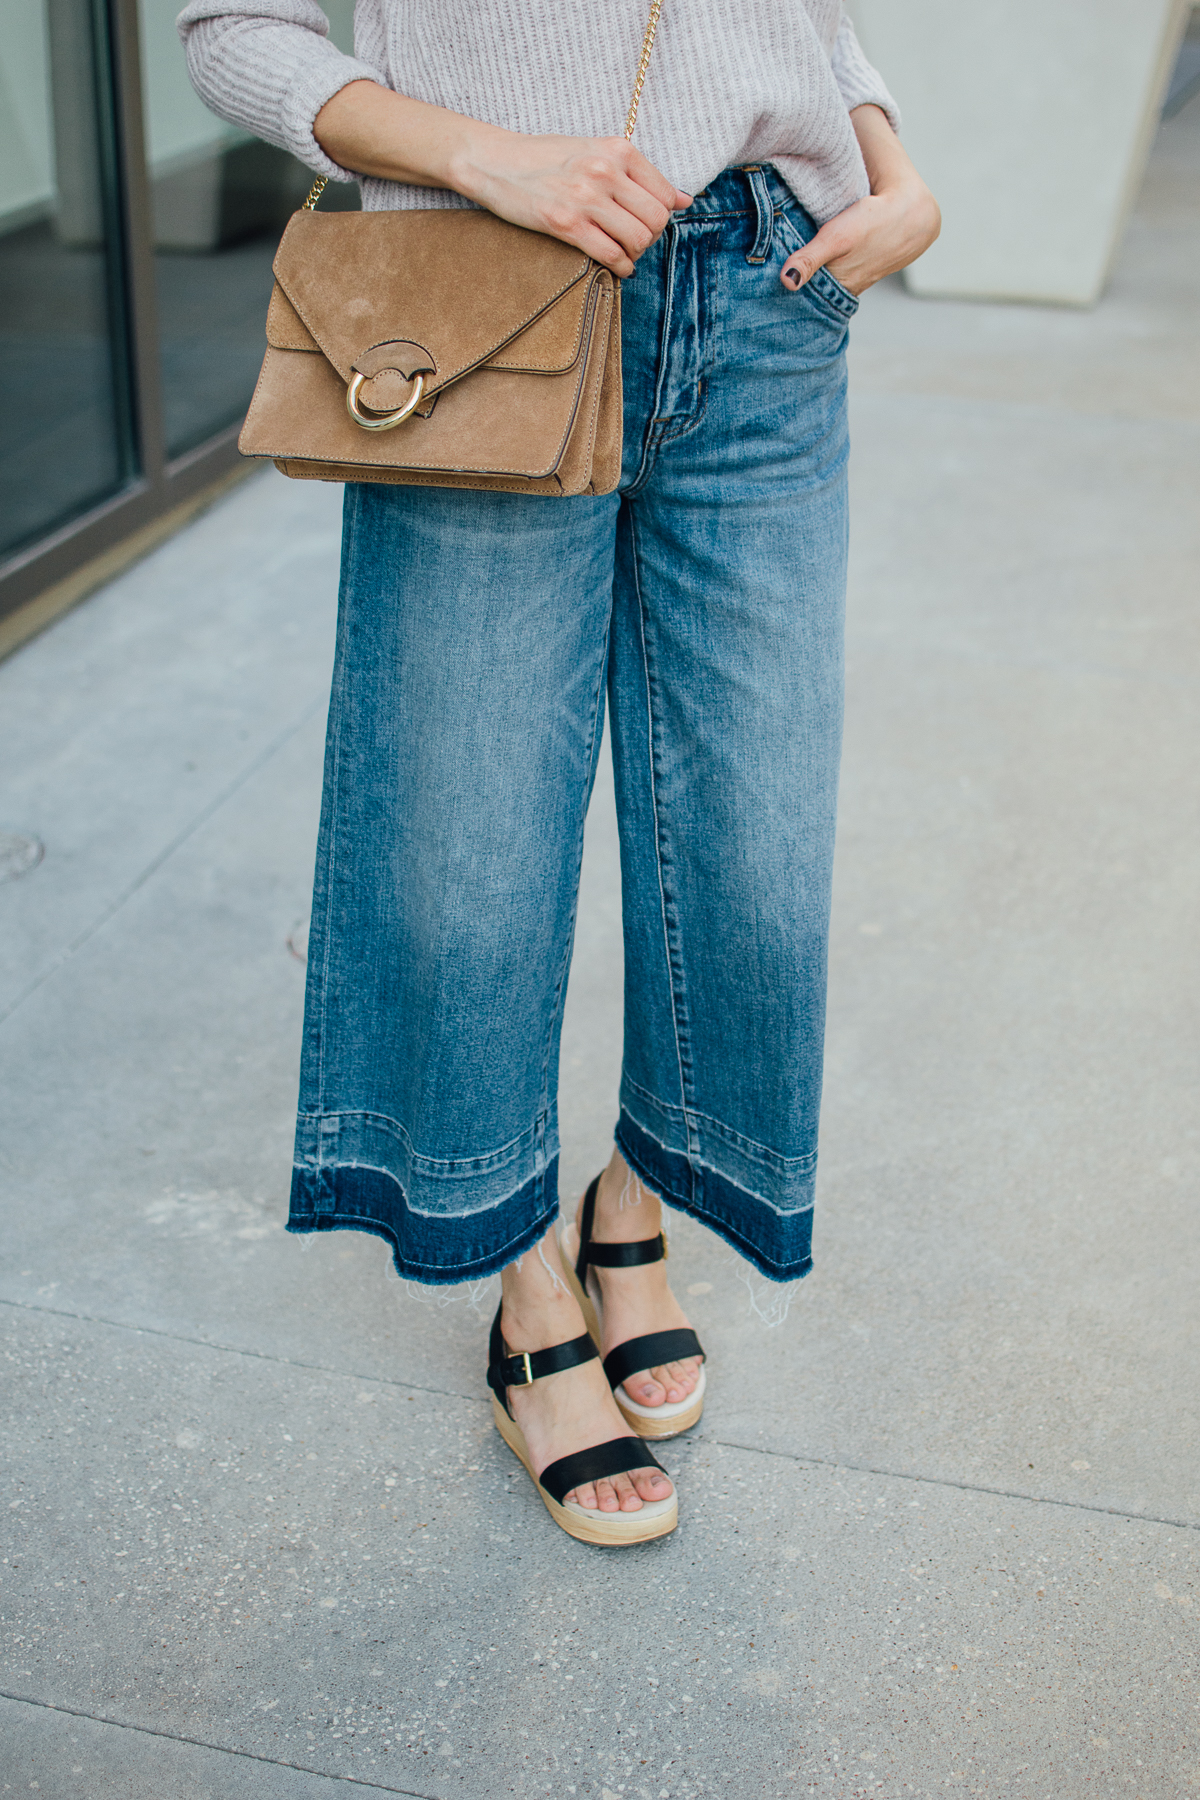 Daily Craving in wide leg denim and platform sandals